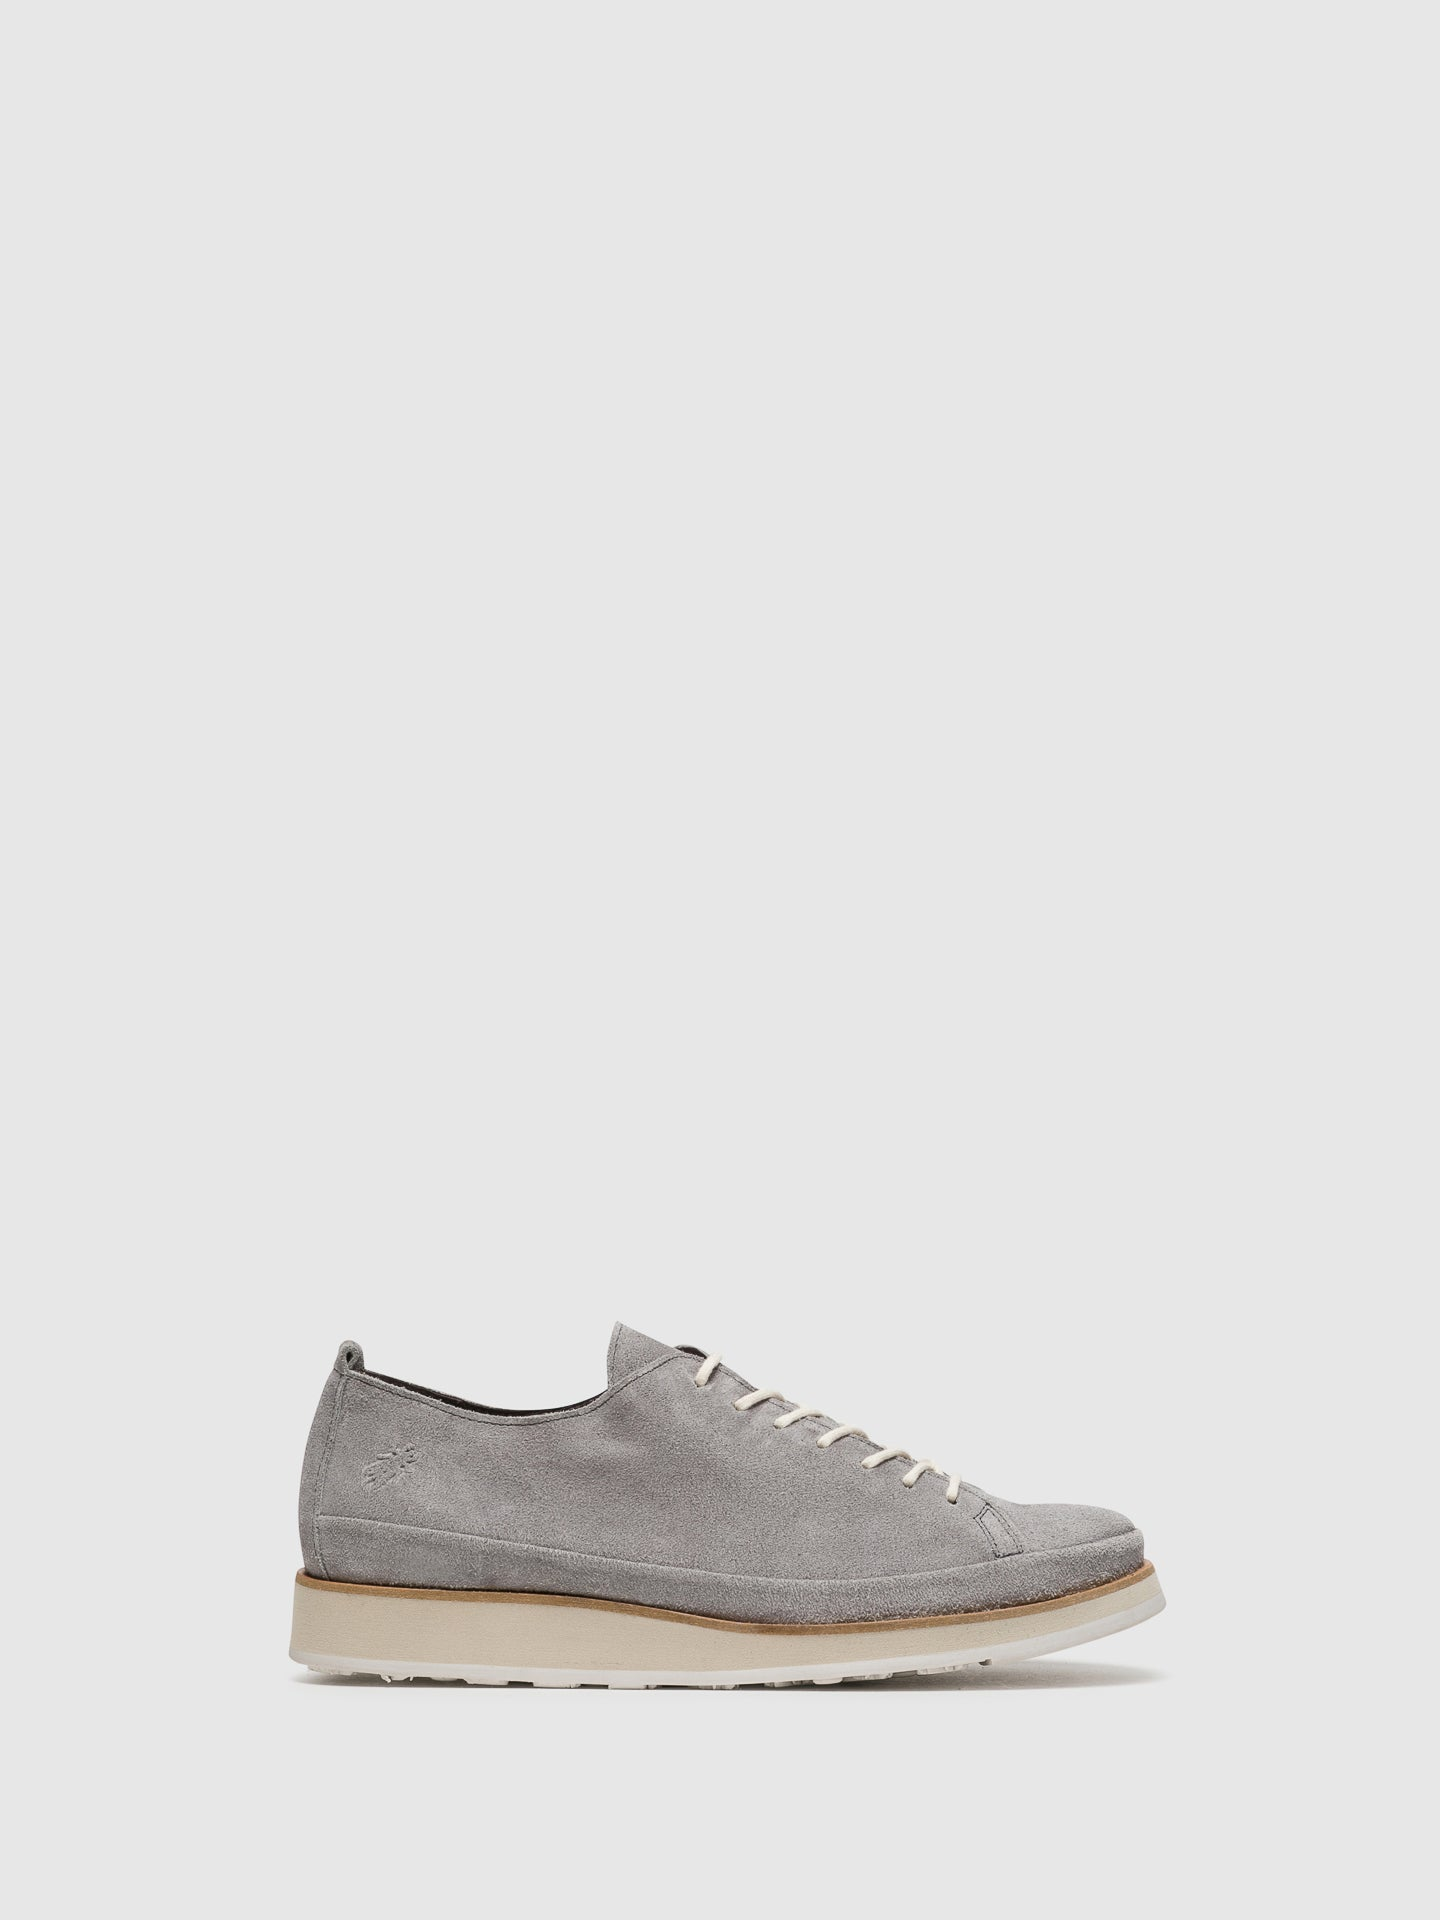 Fly London Gray Lace-up Shoes